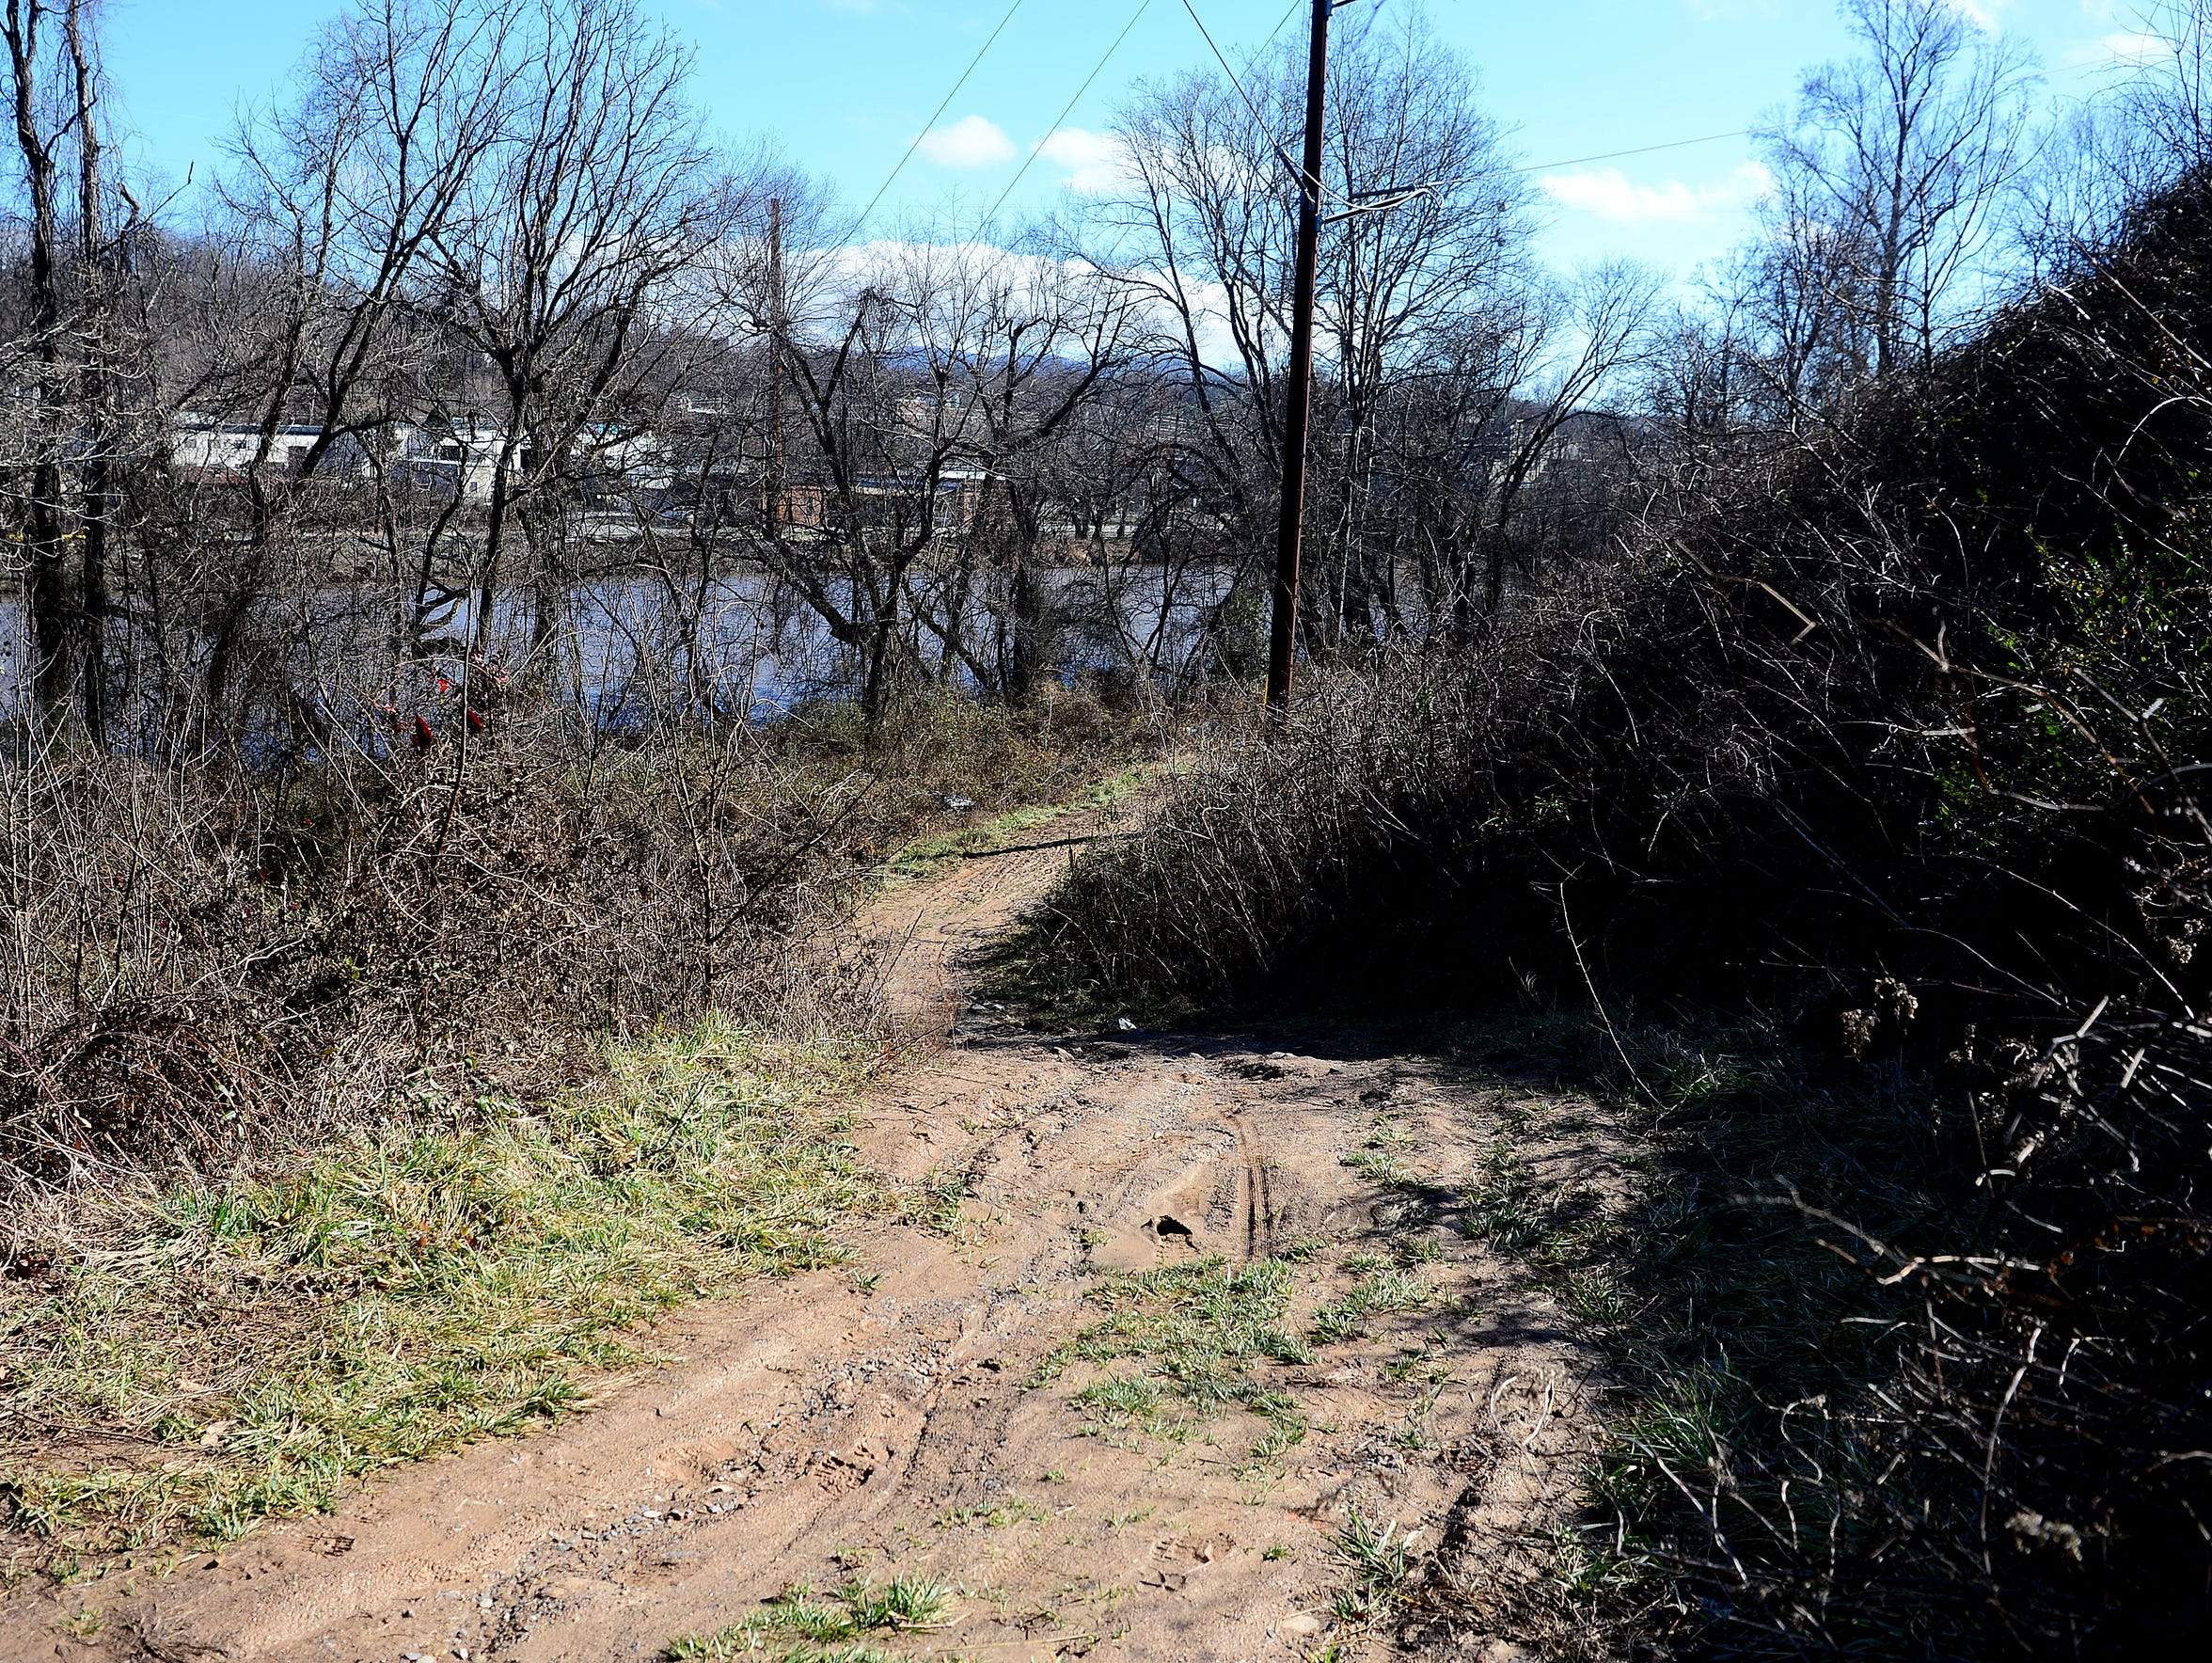 A dirt path marks what will soon be an extension of